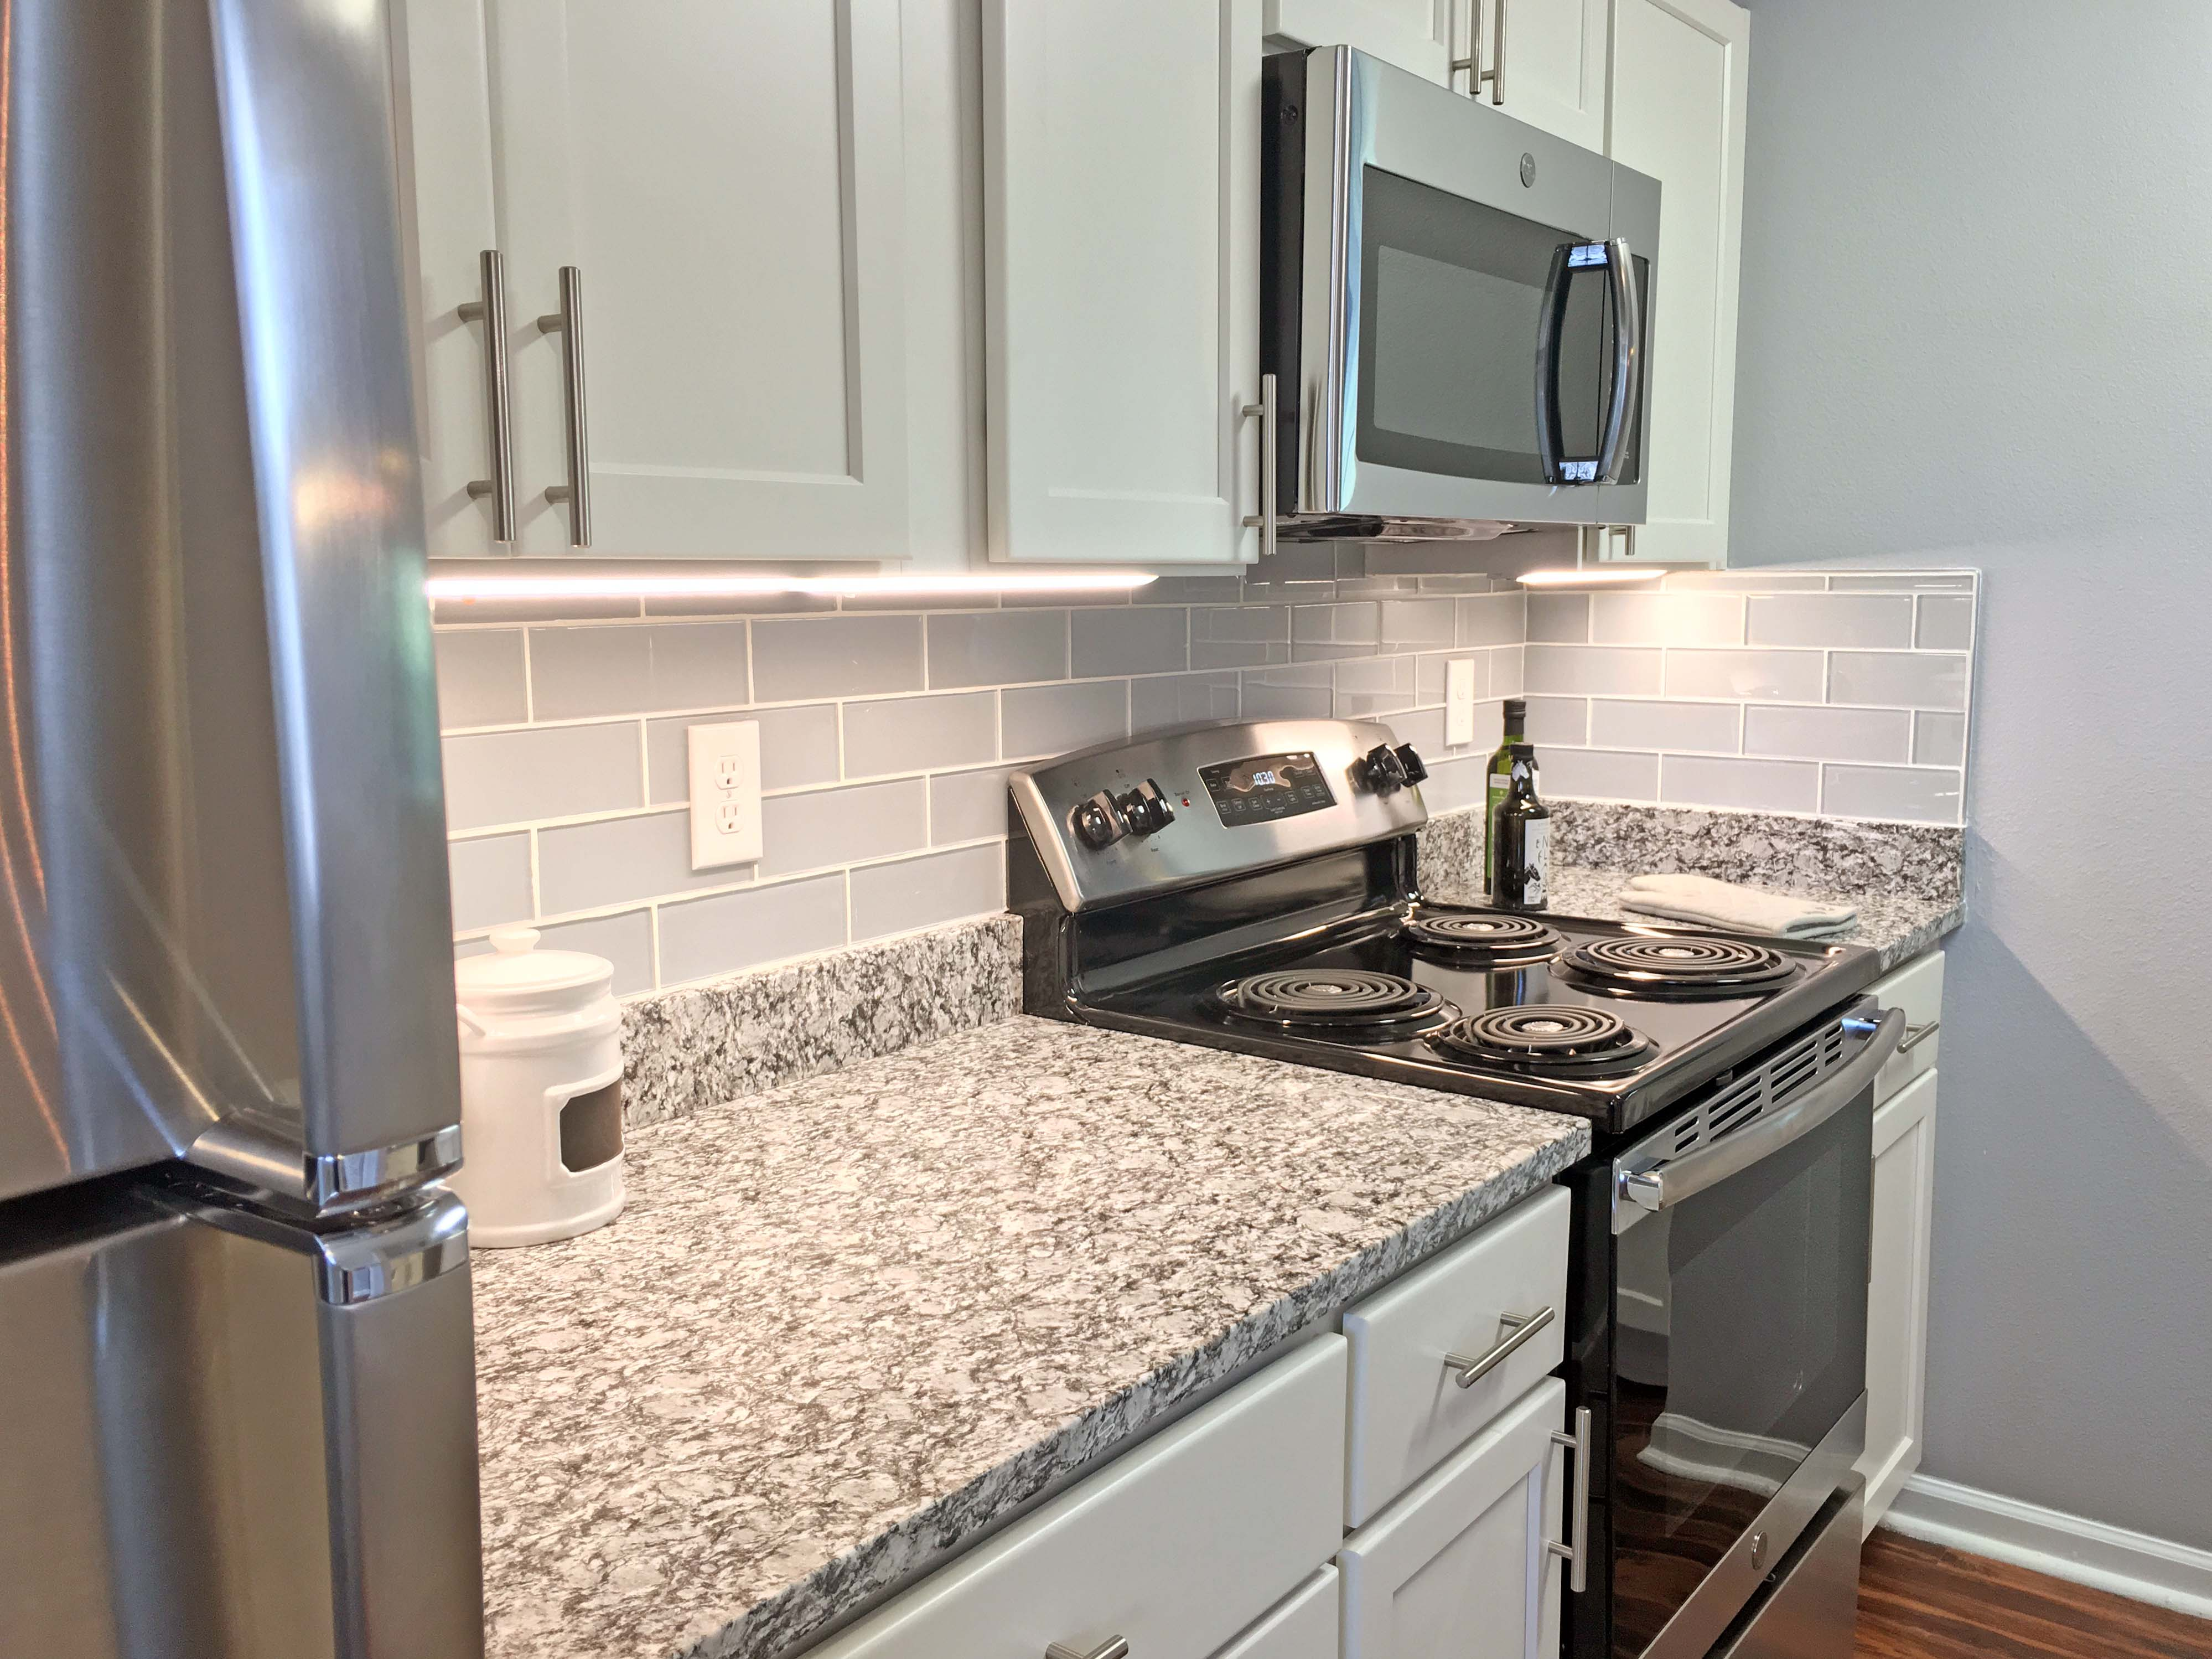 Kitchen Cabinets Birmingham Al Top 107 2 Bedroom Apartments For Rent In Birmingham Al P 2